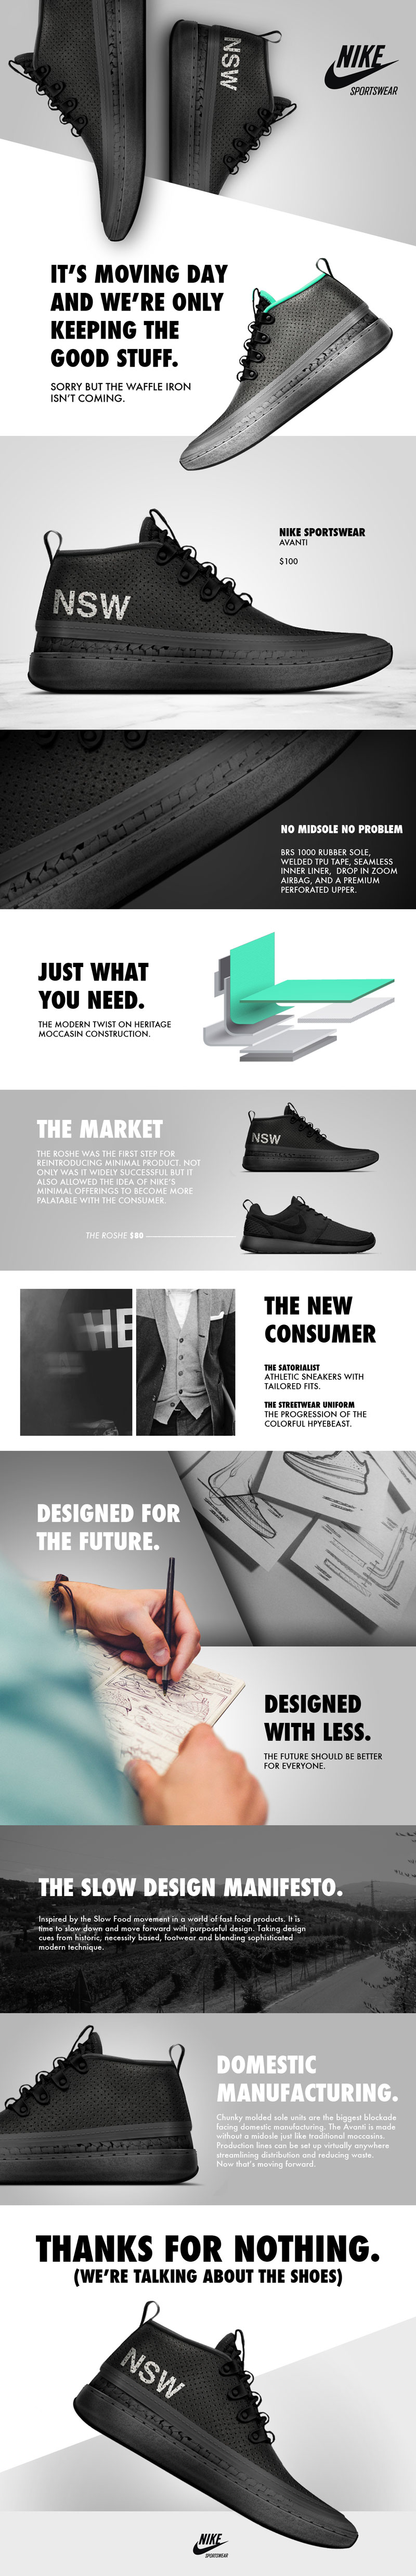 Nike AVANTI Product Web Design for Inspiration